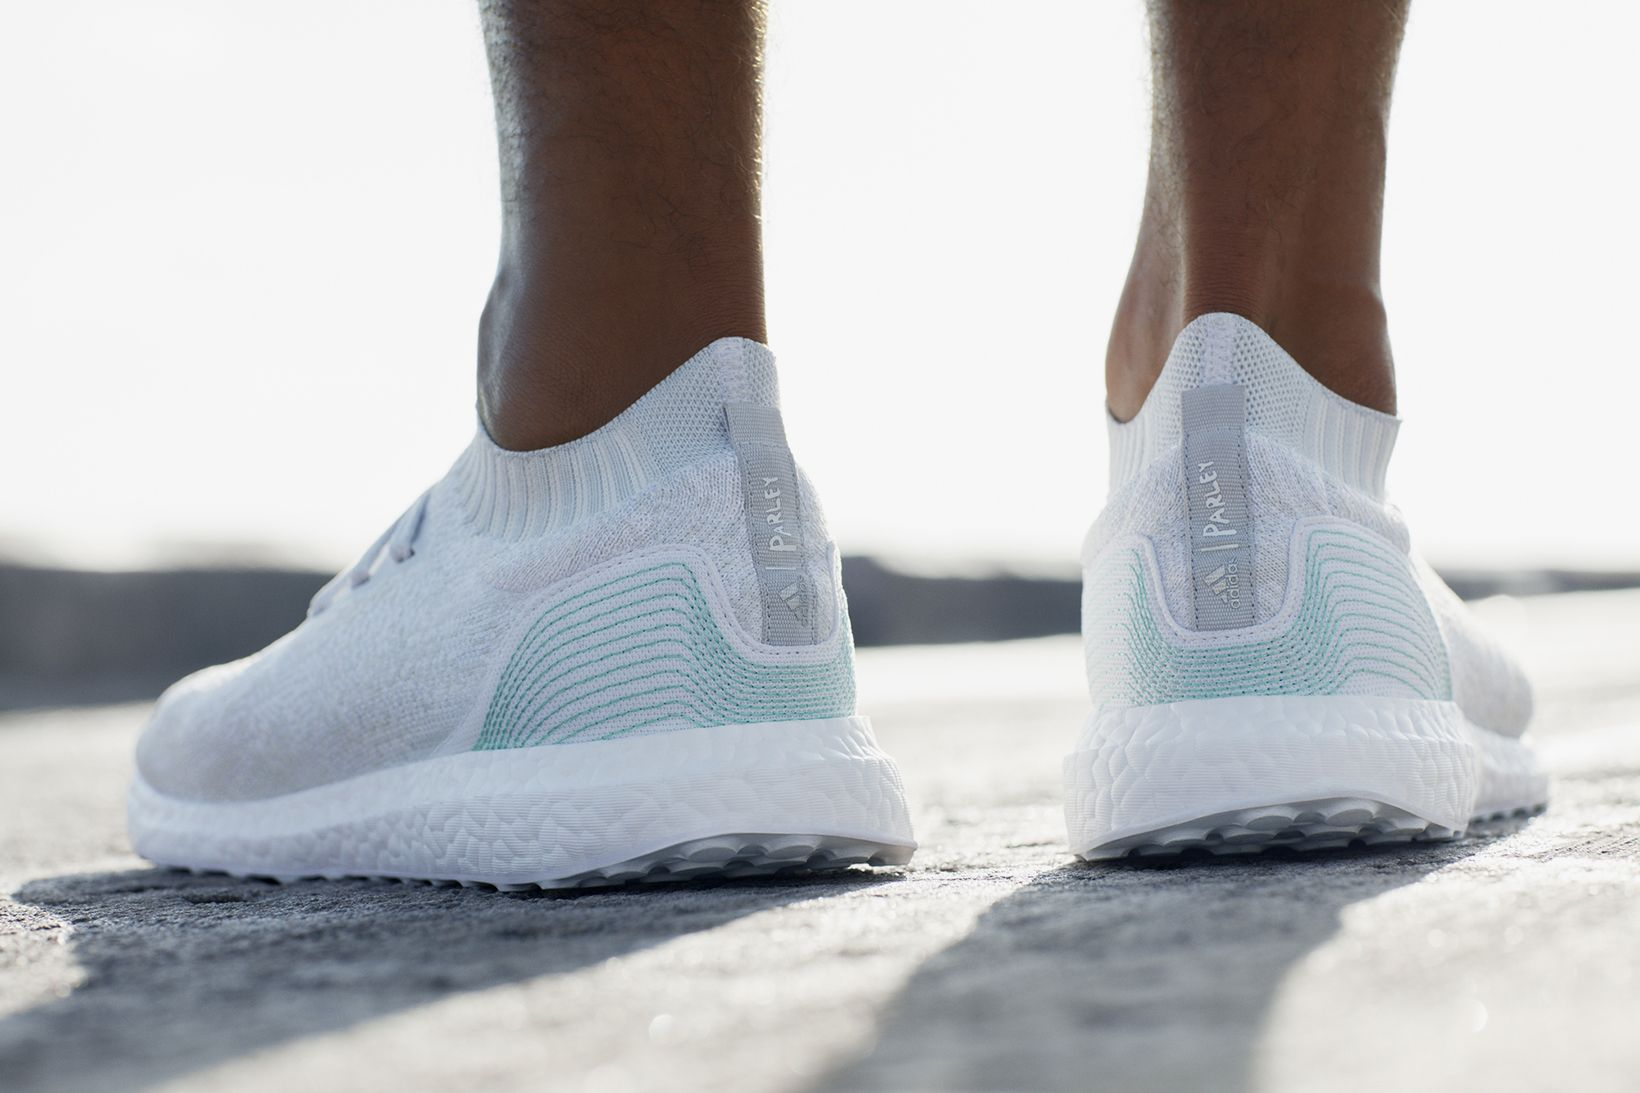 de488dbcf adidas Unveils Its First Mass-Produced Parley Ocean Plastic Collection